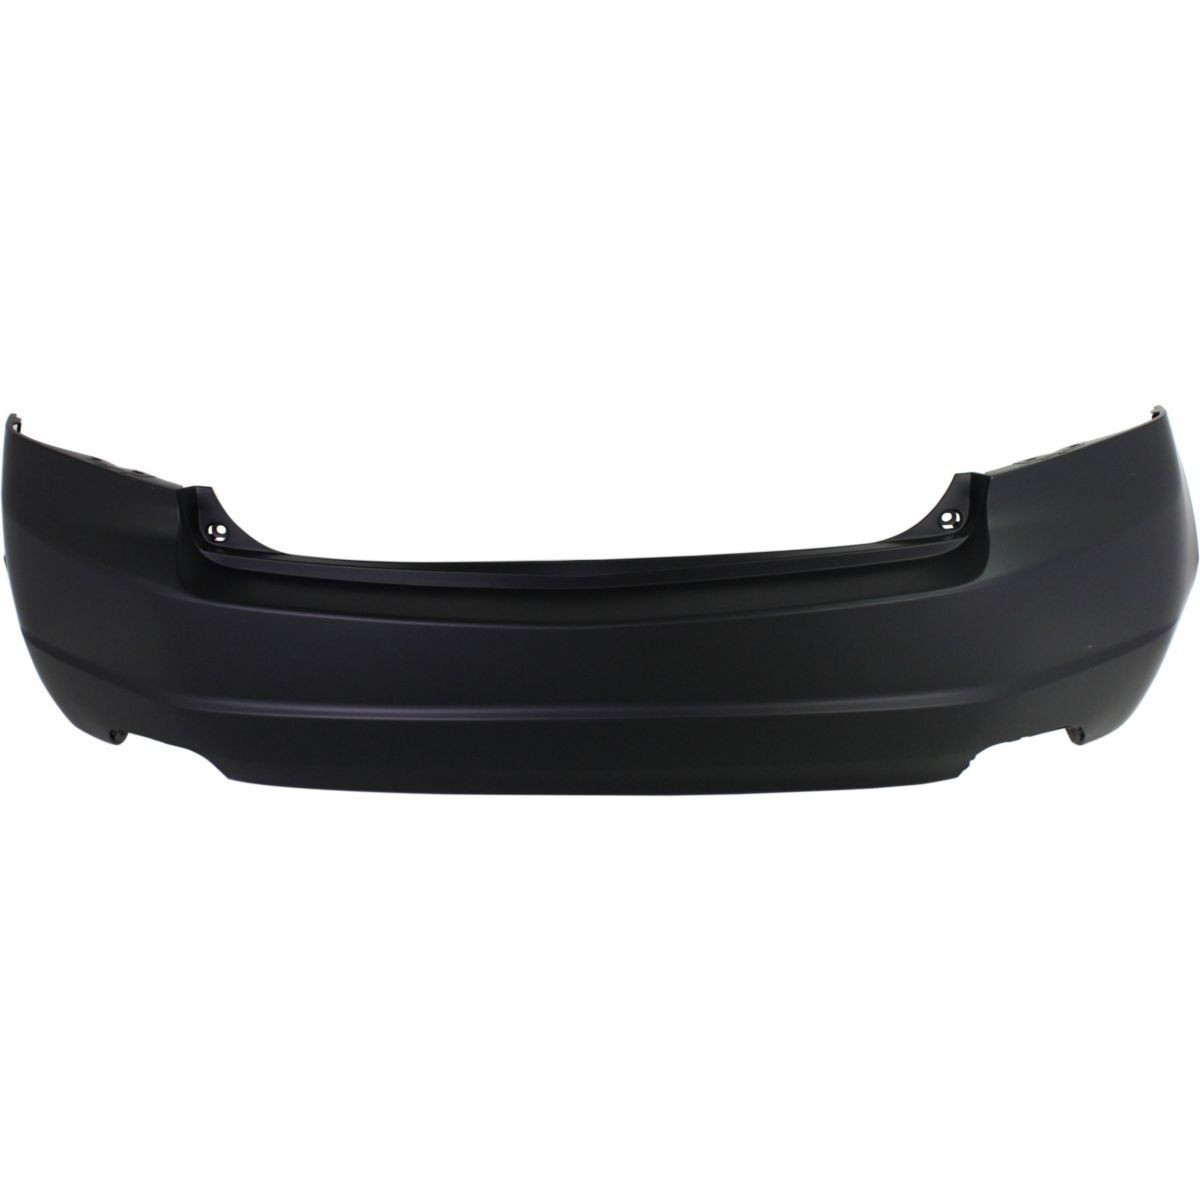 Genuine OEM Acura TL TYPES Rear Bumper - Acura tl rear bumper